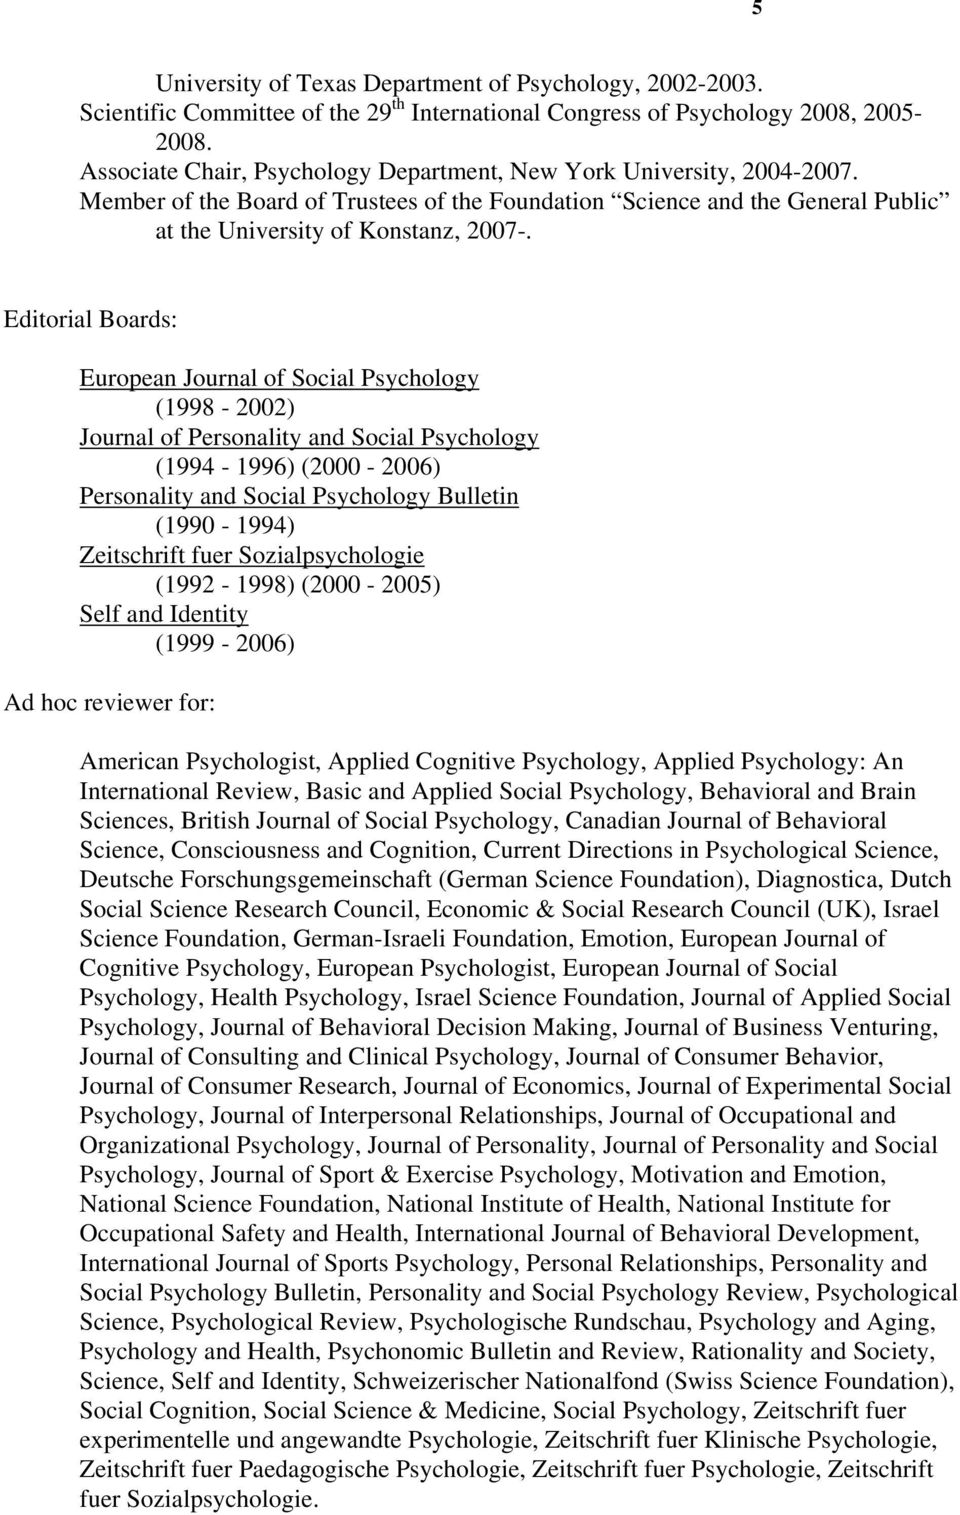 Editorial Boards: European Journal of Social Psychology (1998-2002) Journal of Personality and Social Psychology (1994-1996) (2000-2006) Personality and Social Psychology Bulletin (1990-1994)